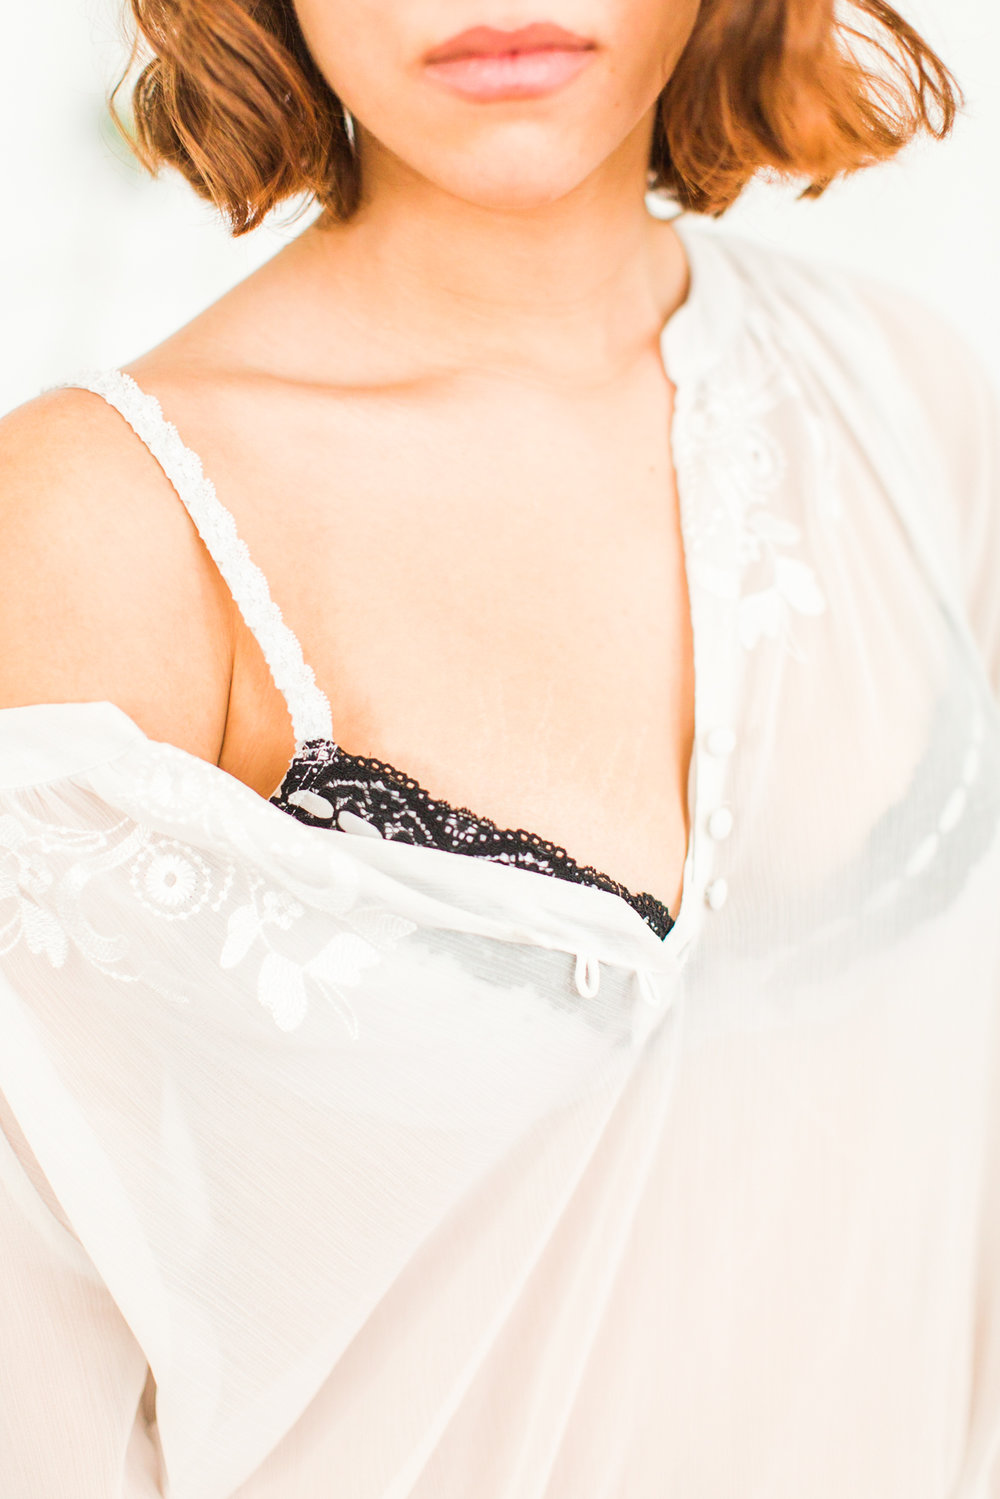 Bridal Boudoir - Shaina Lee Photography WEB-300.jpg